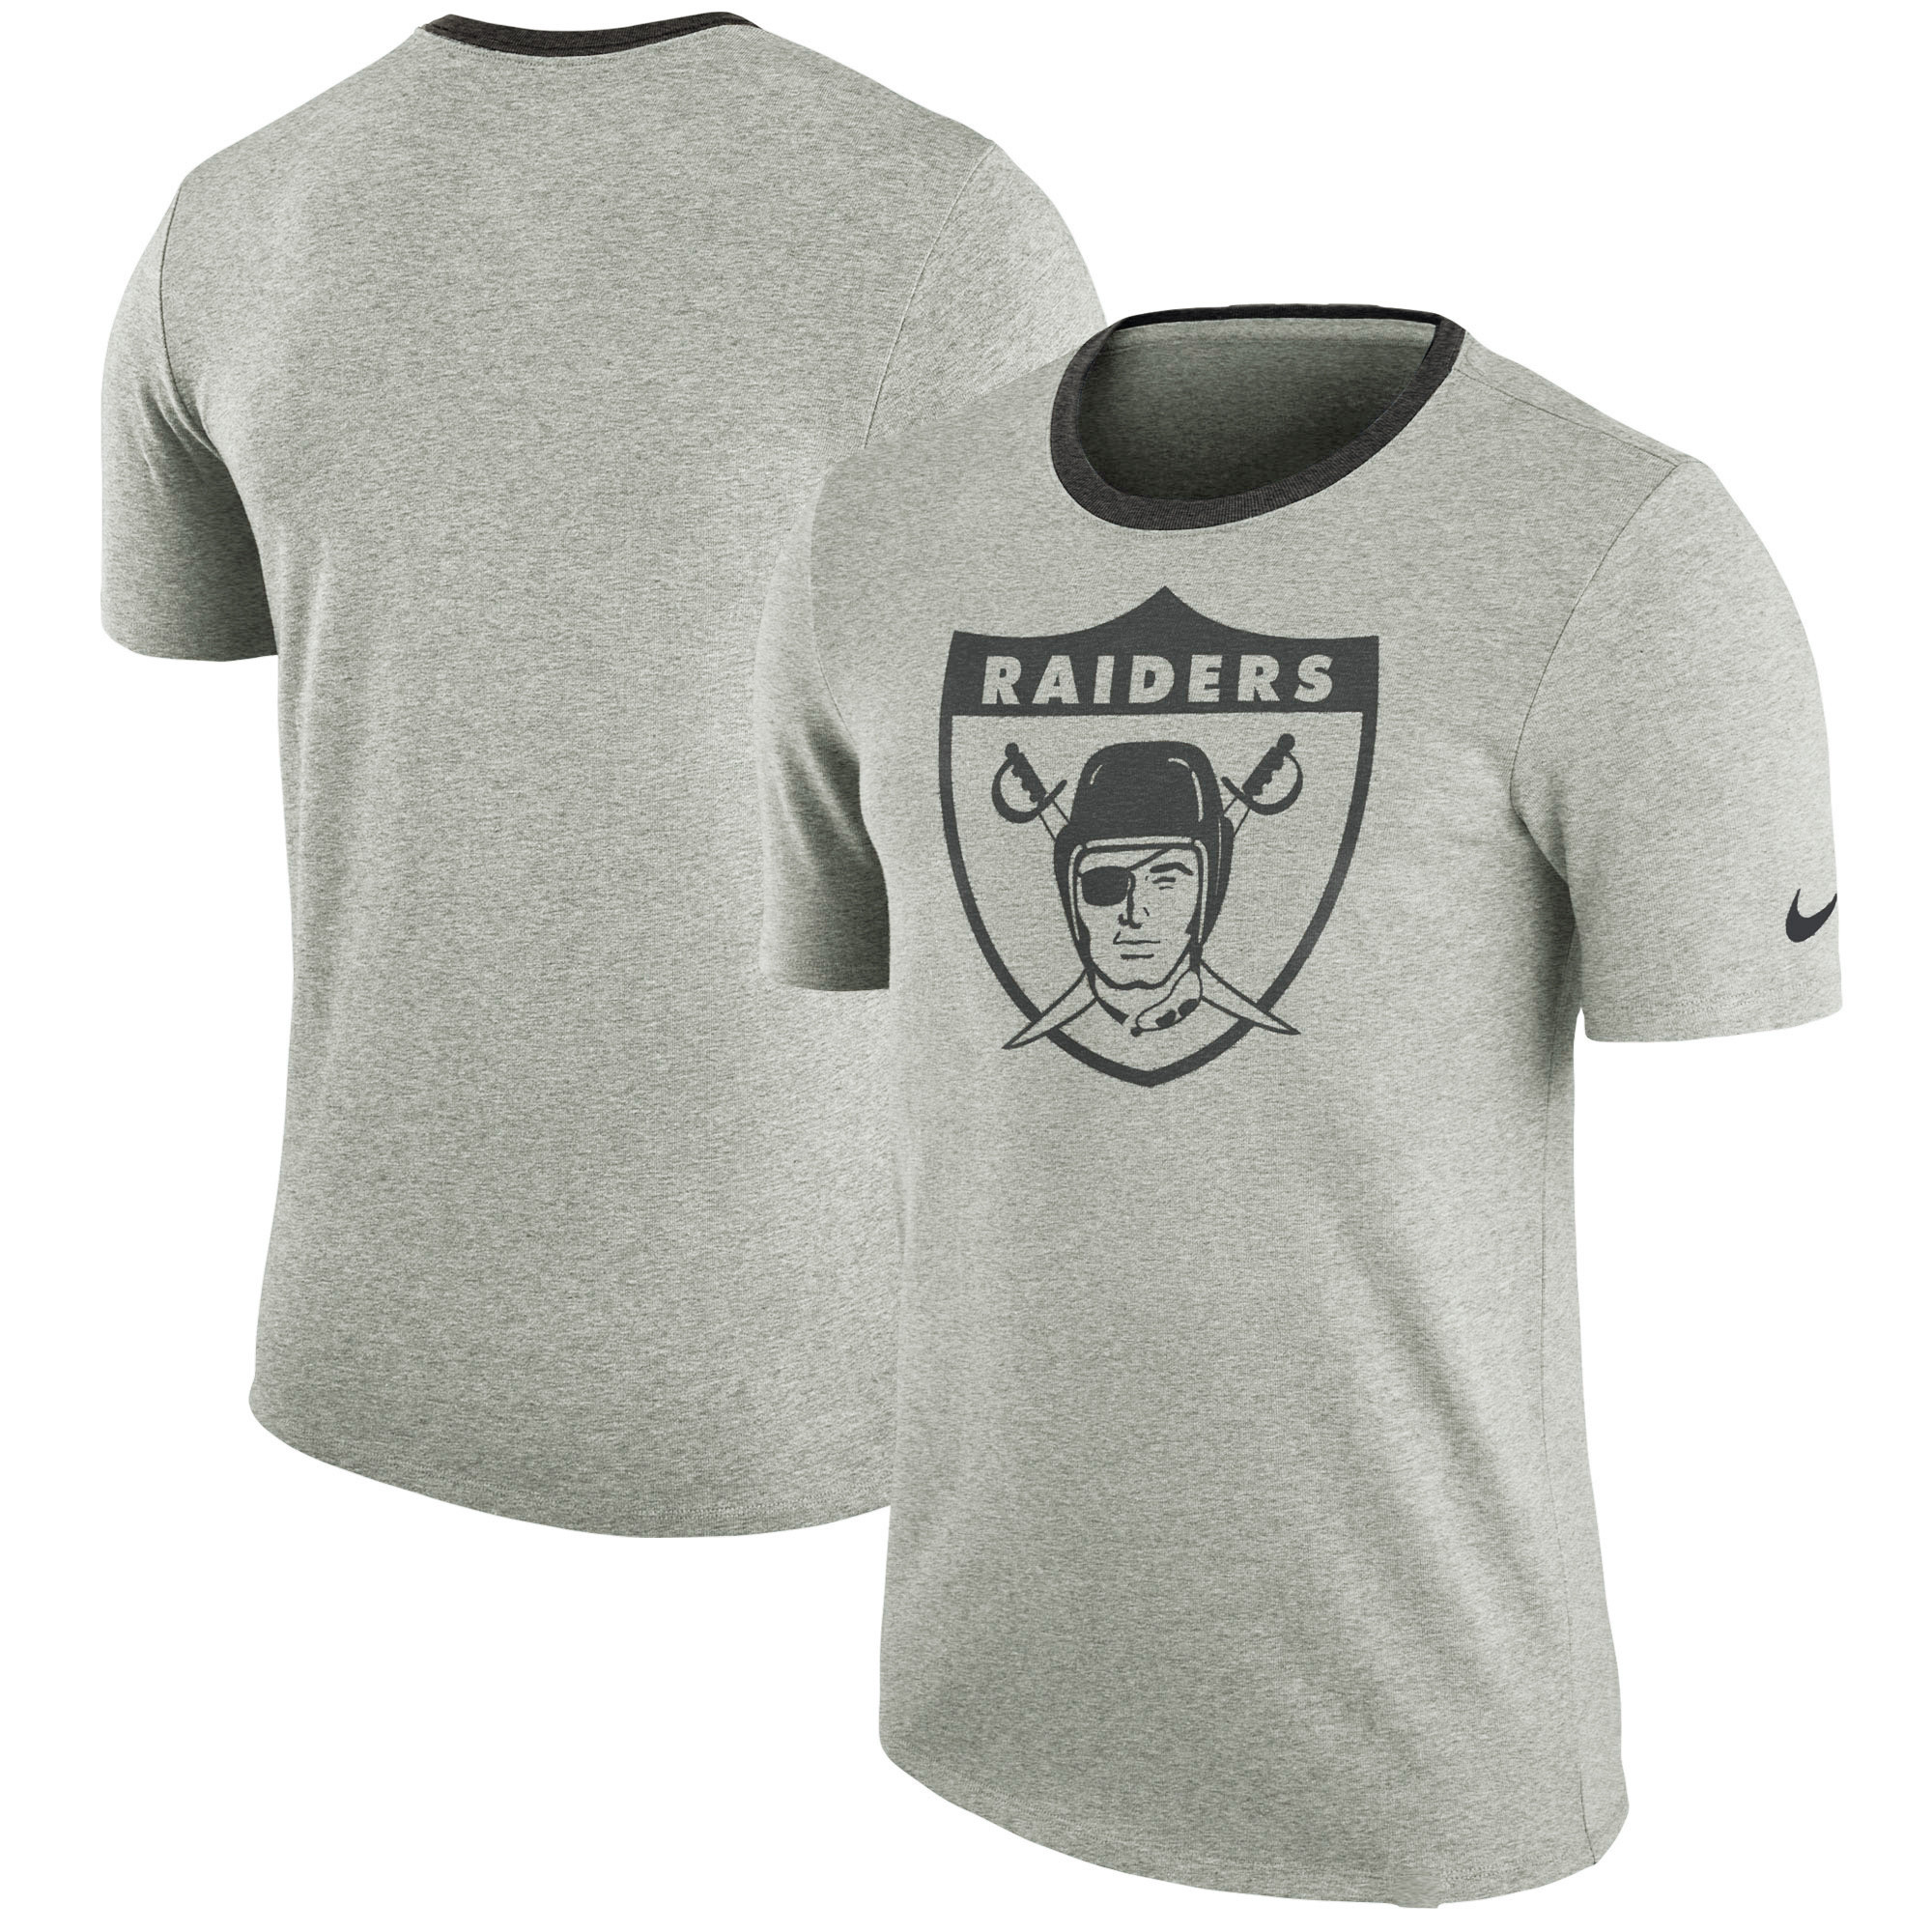 Oakland Raiders Nike Retro Modern Ringer T-Shirt - Heathered Gray